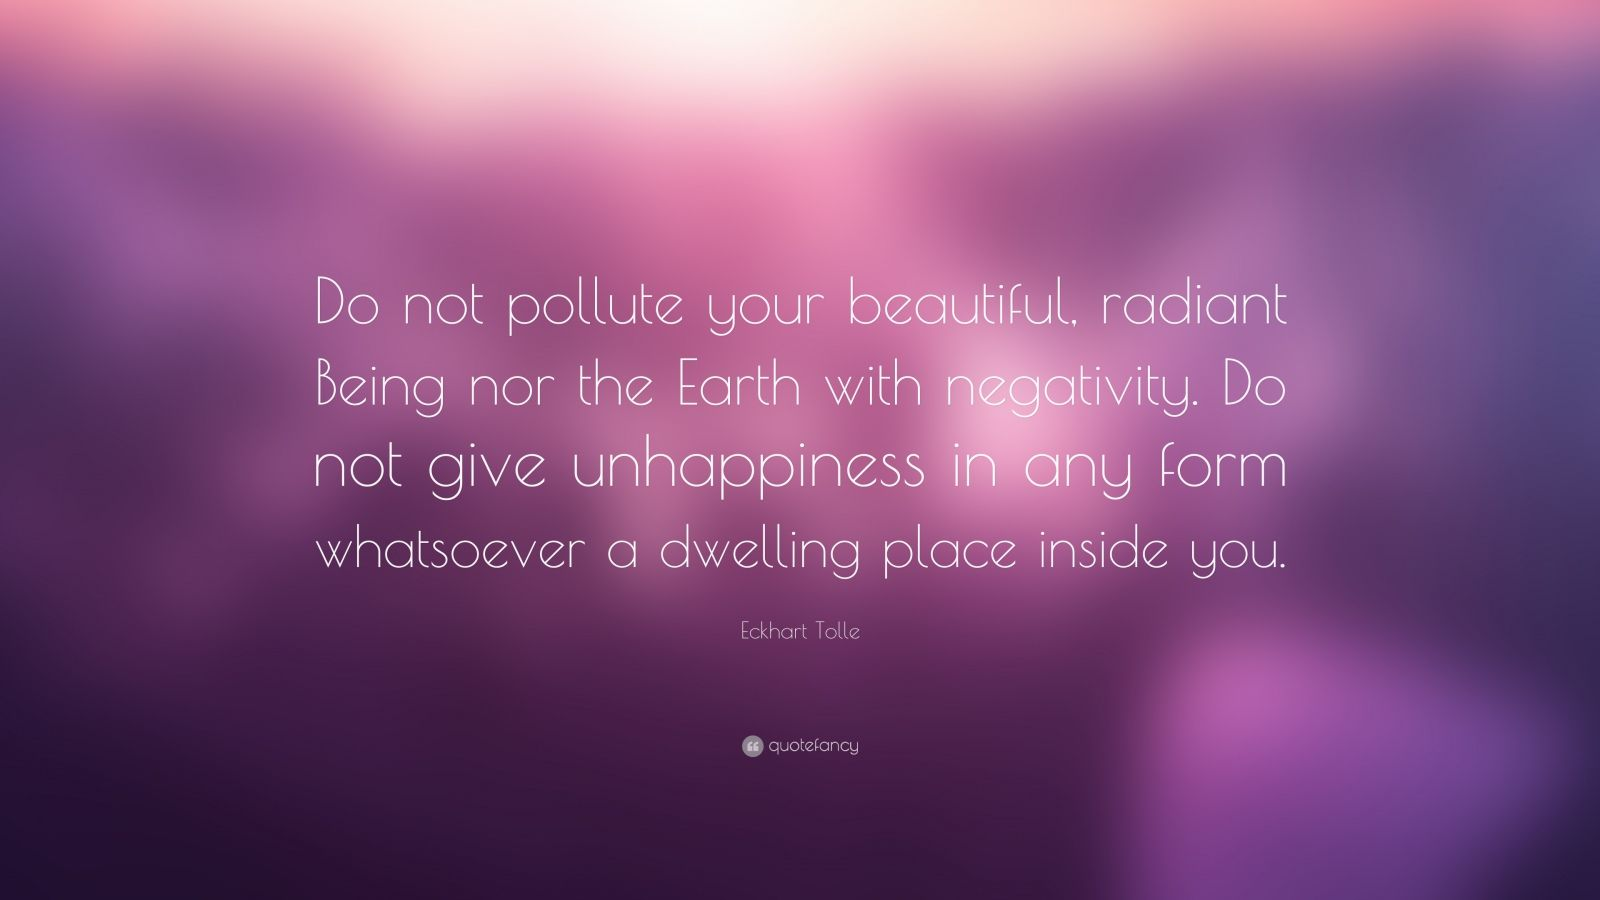 """Eckhart Tolle Quote: """"Do not pollute your beautiful, radiant Being nor the Earth with negativity. Do not give unhappiness in any form whatsoever a dwelling place inside you."""""""